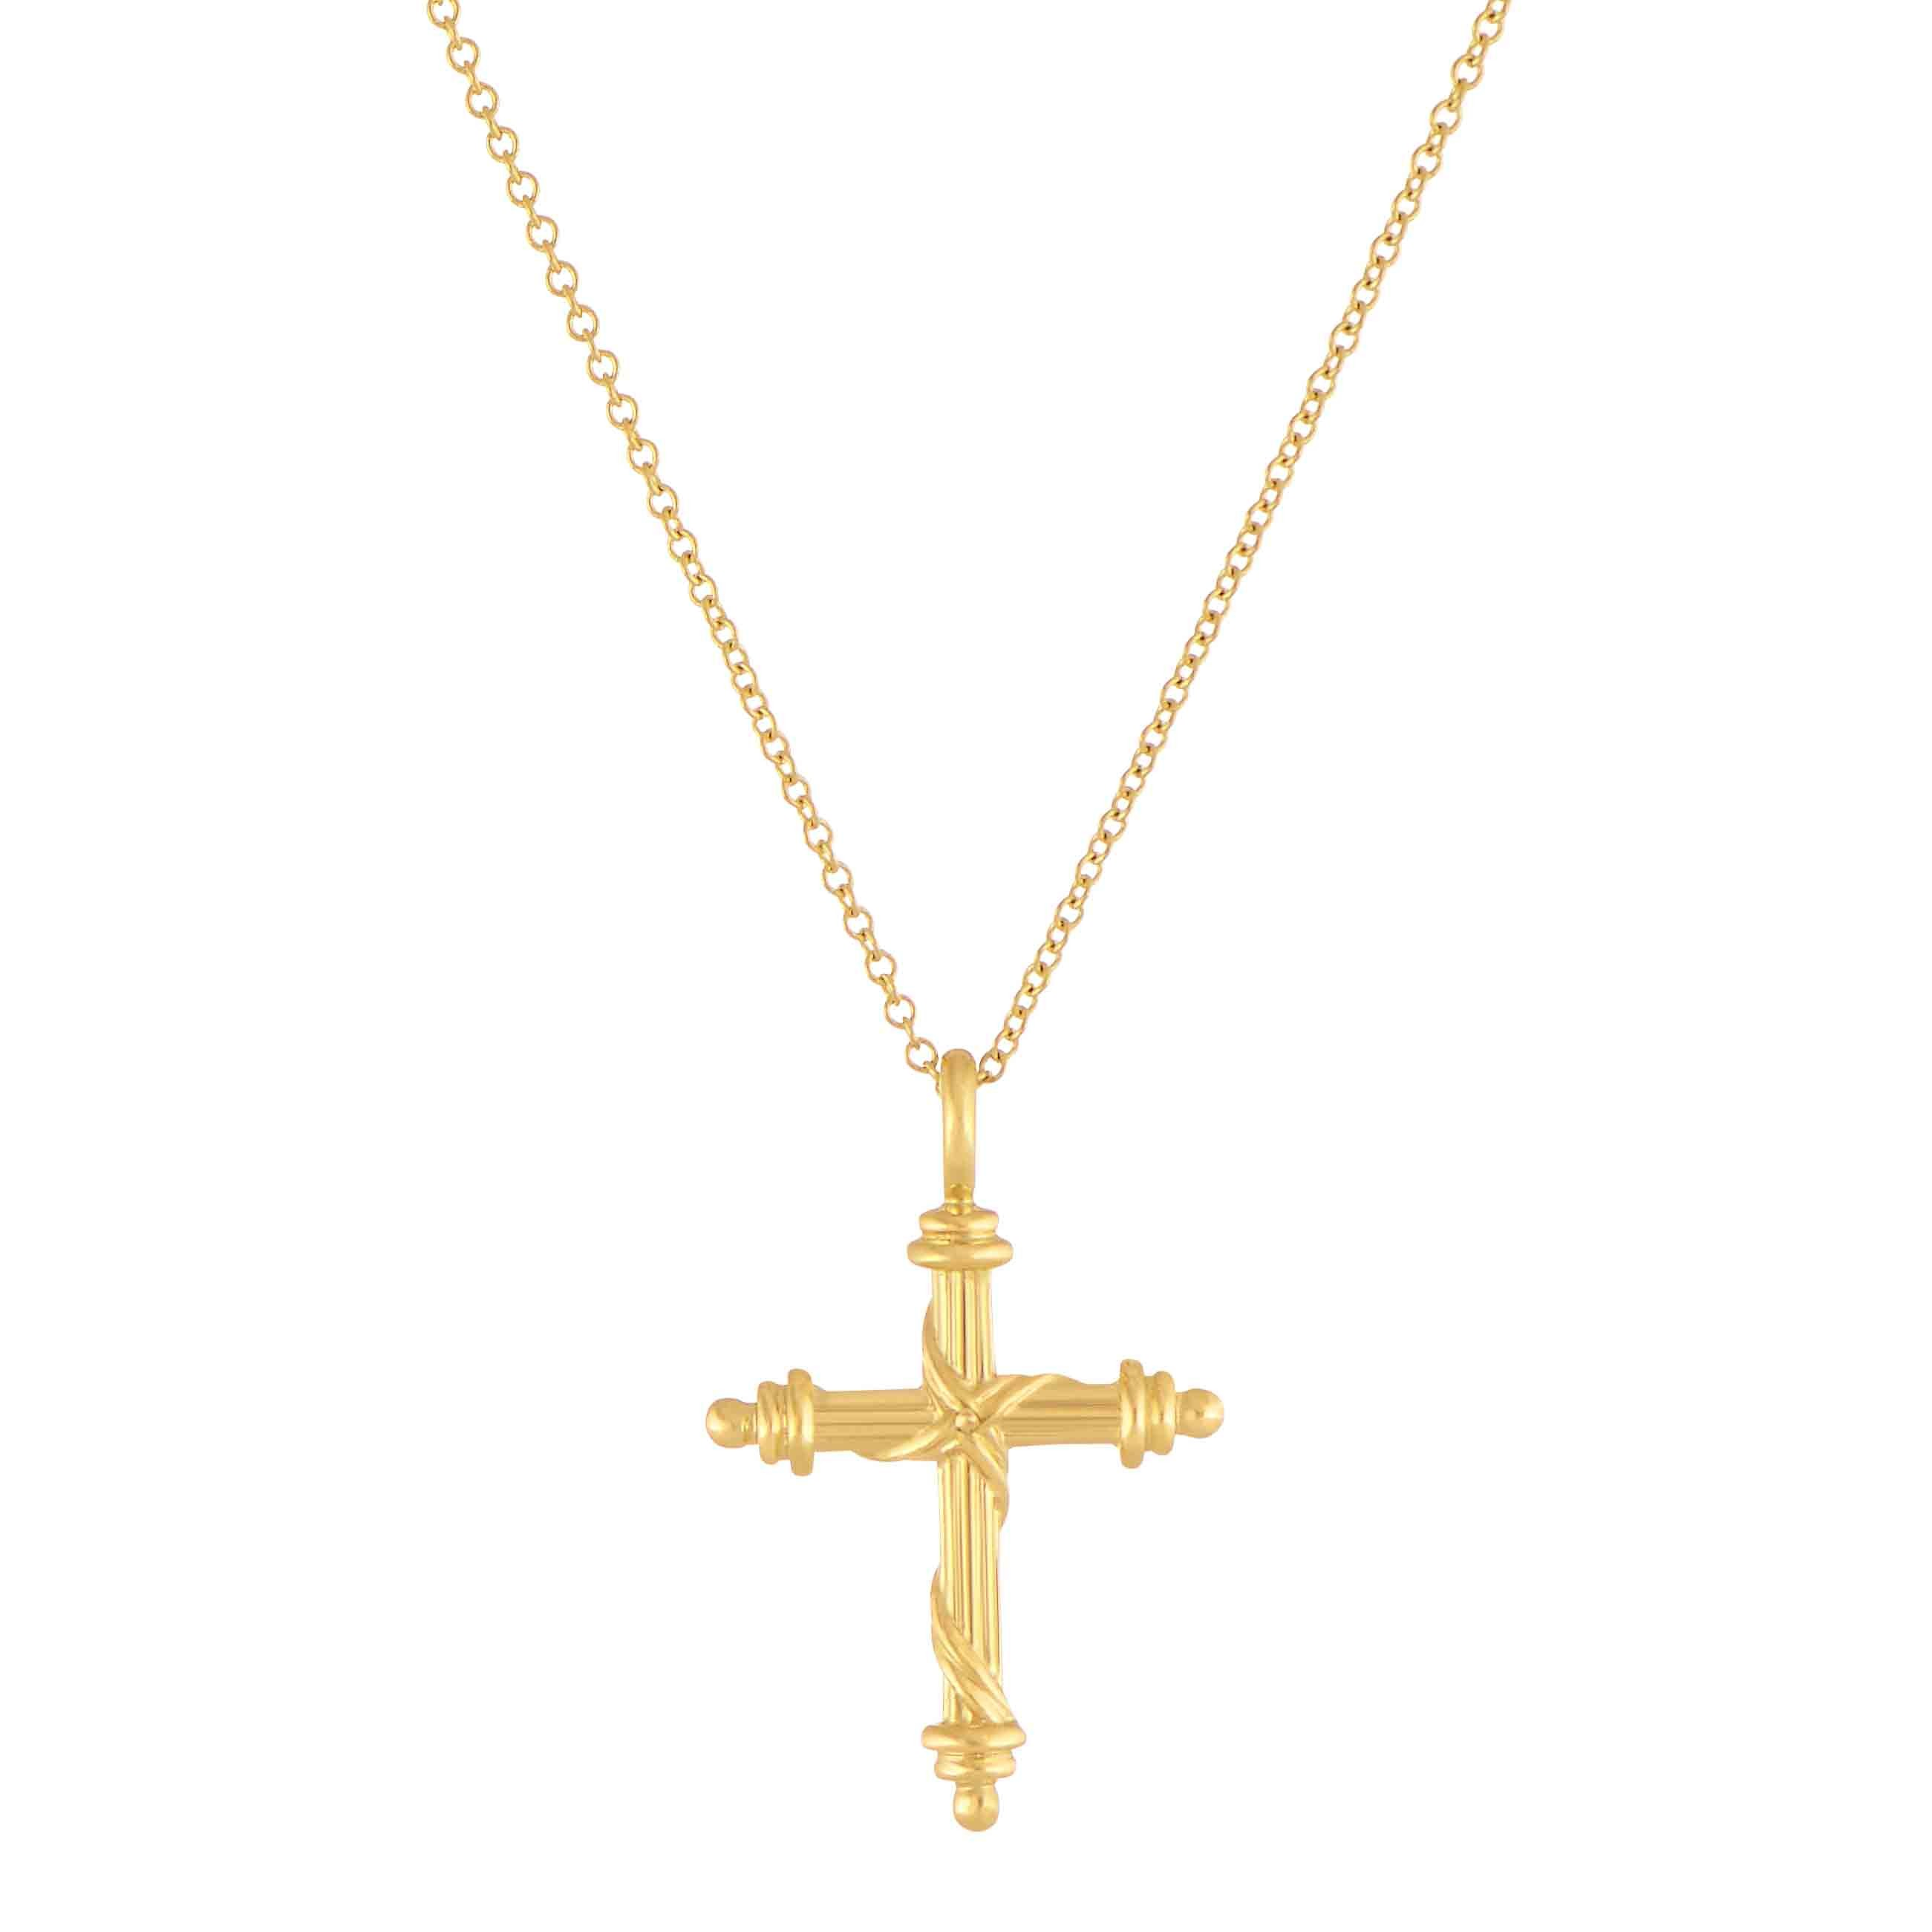 Heritage cross pendant necklace in 18k yellow gold mini heritage mini cross necklace in 18k yellow gold 18 adjustable chain aloadofball